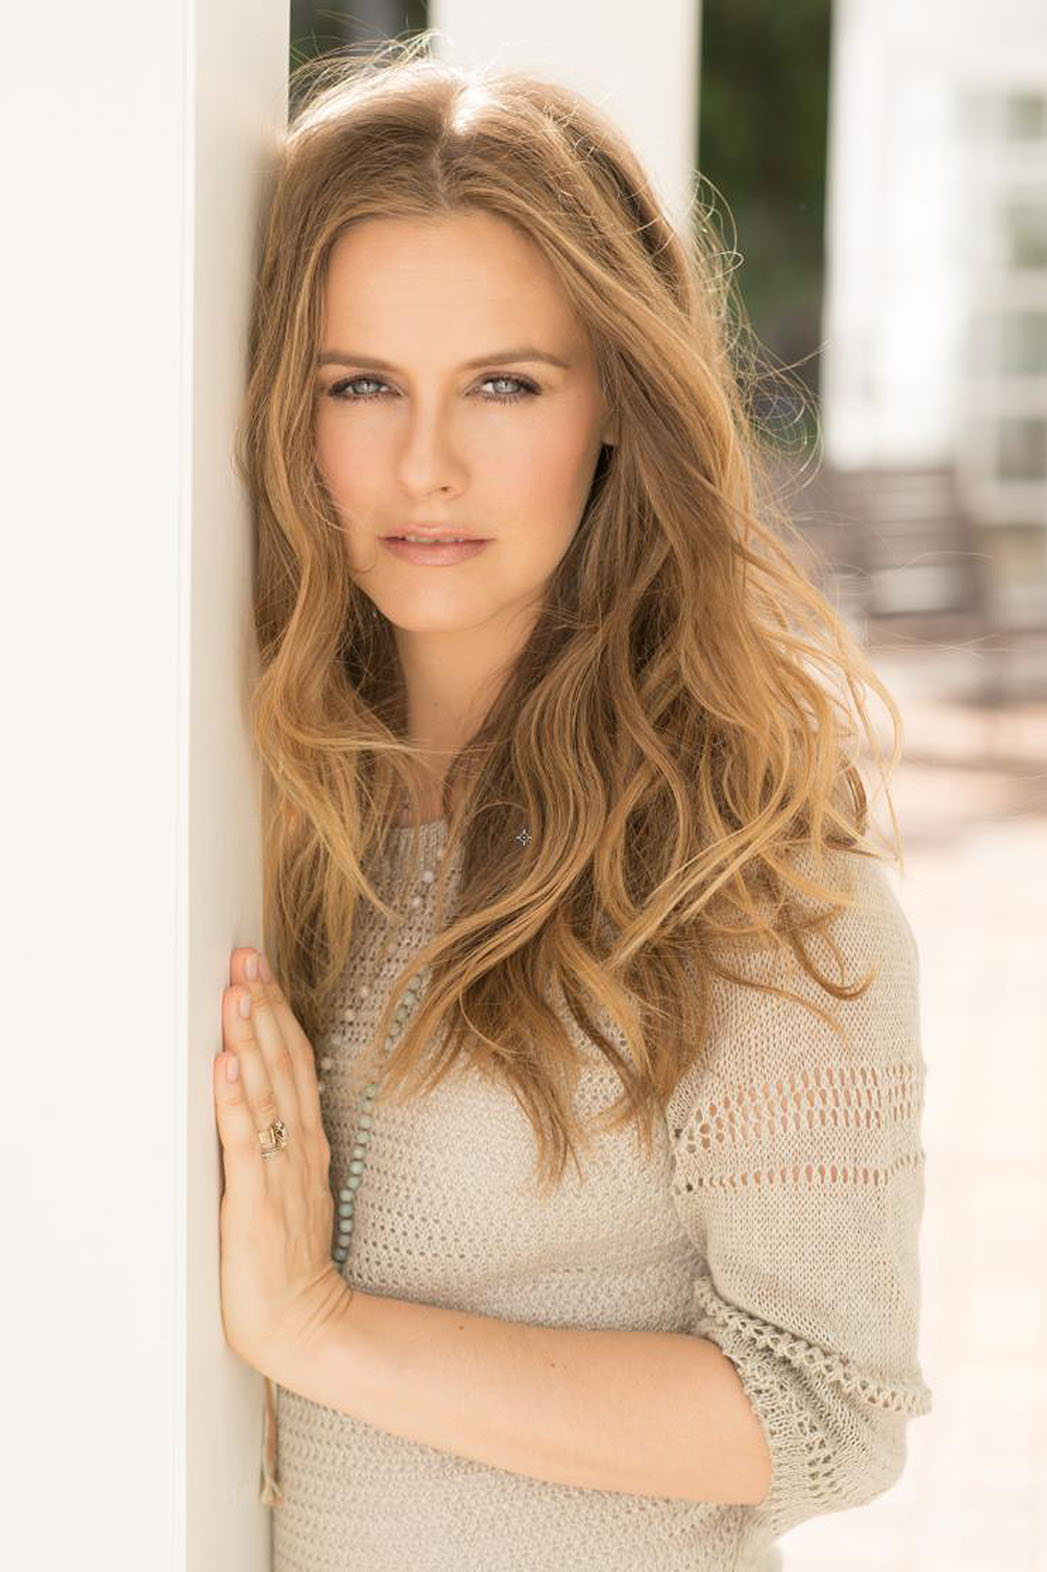 Diary Of A Wimpy Kid The Long Haul Adds Alicia Silverstone Exclusive Hollywood Reporter